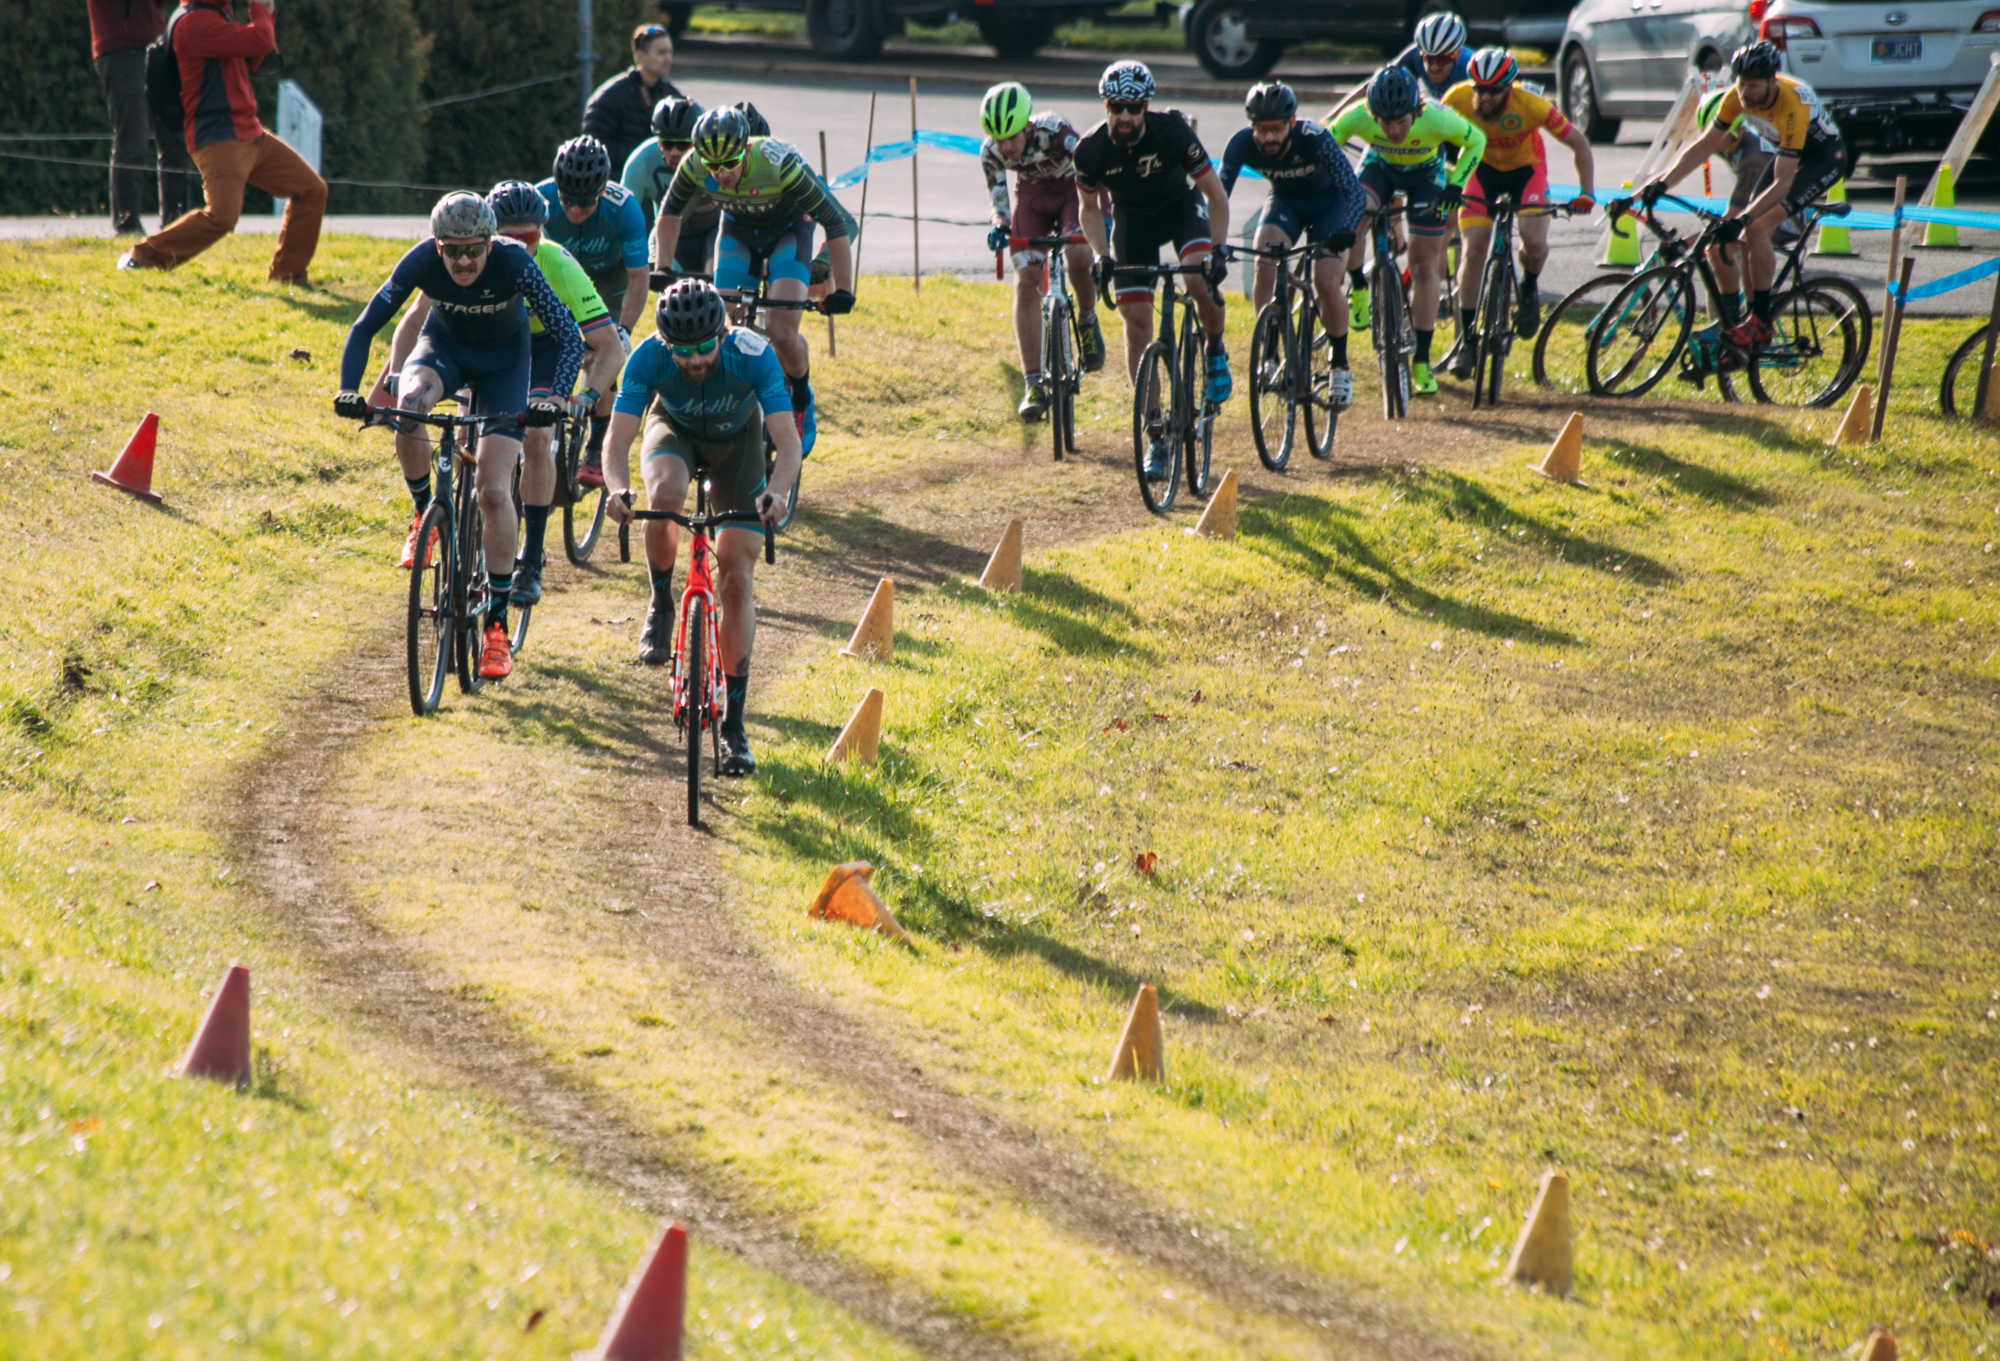 Cyclocross18_CCCX_RainierHS-41-mettlecycling.jpg